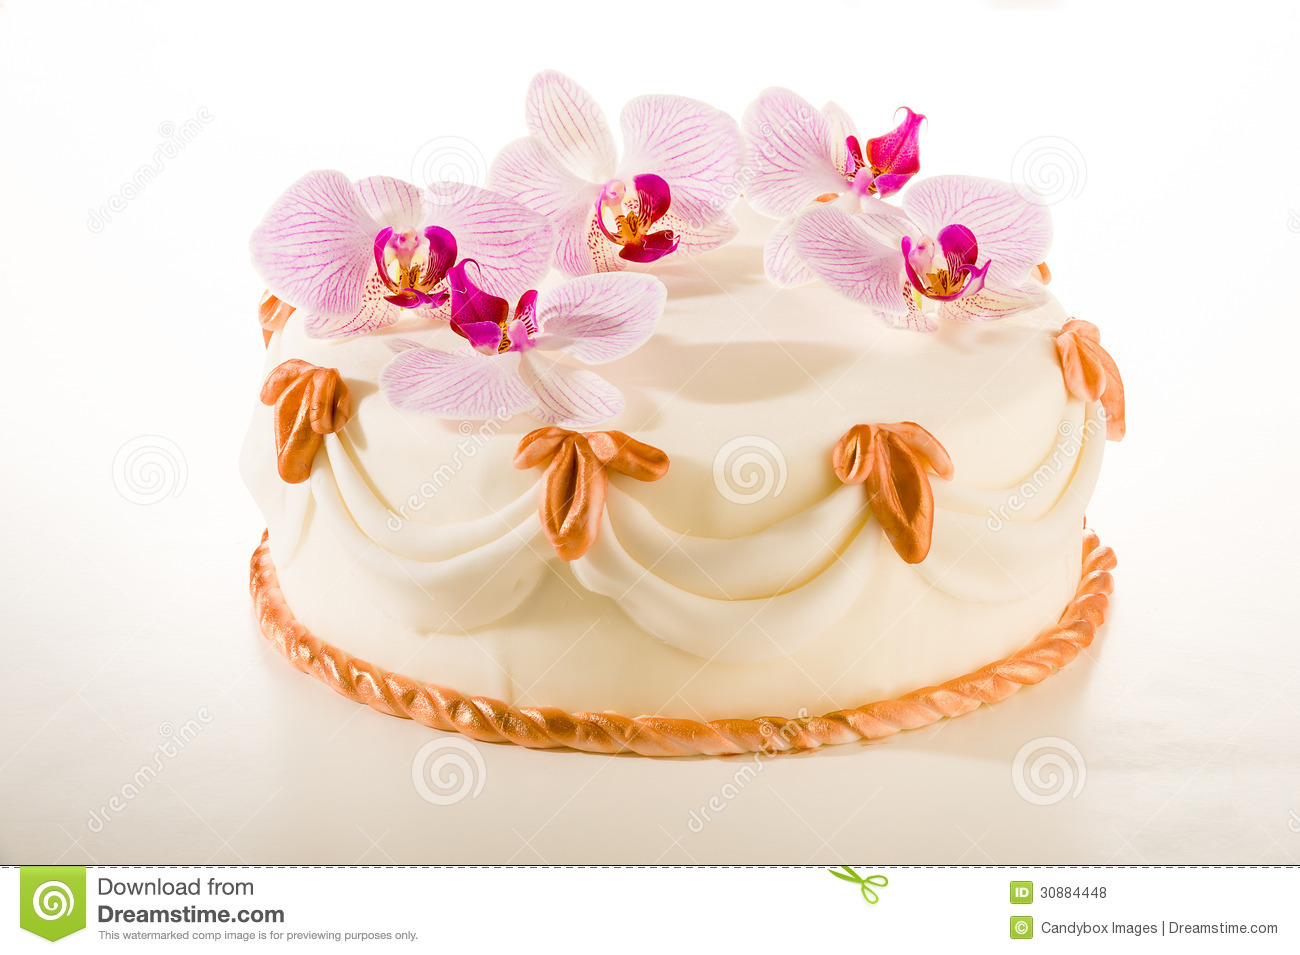 Tasty Decorated Cake In White Marzipan Coating Royalty